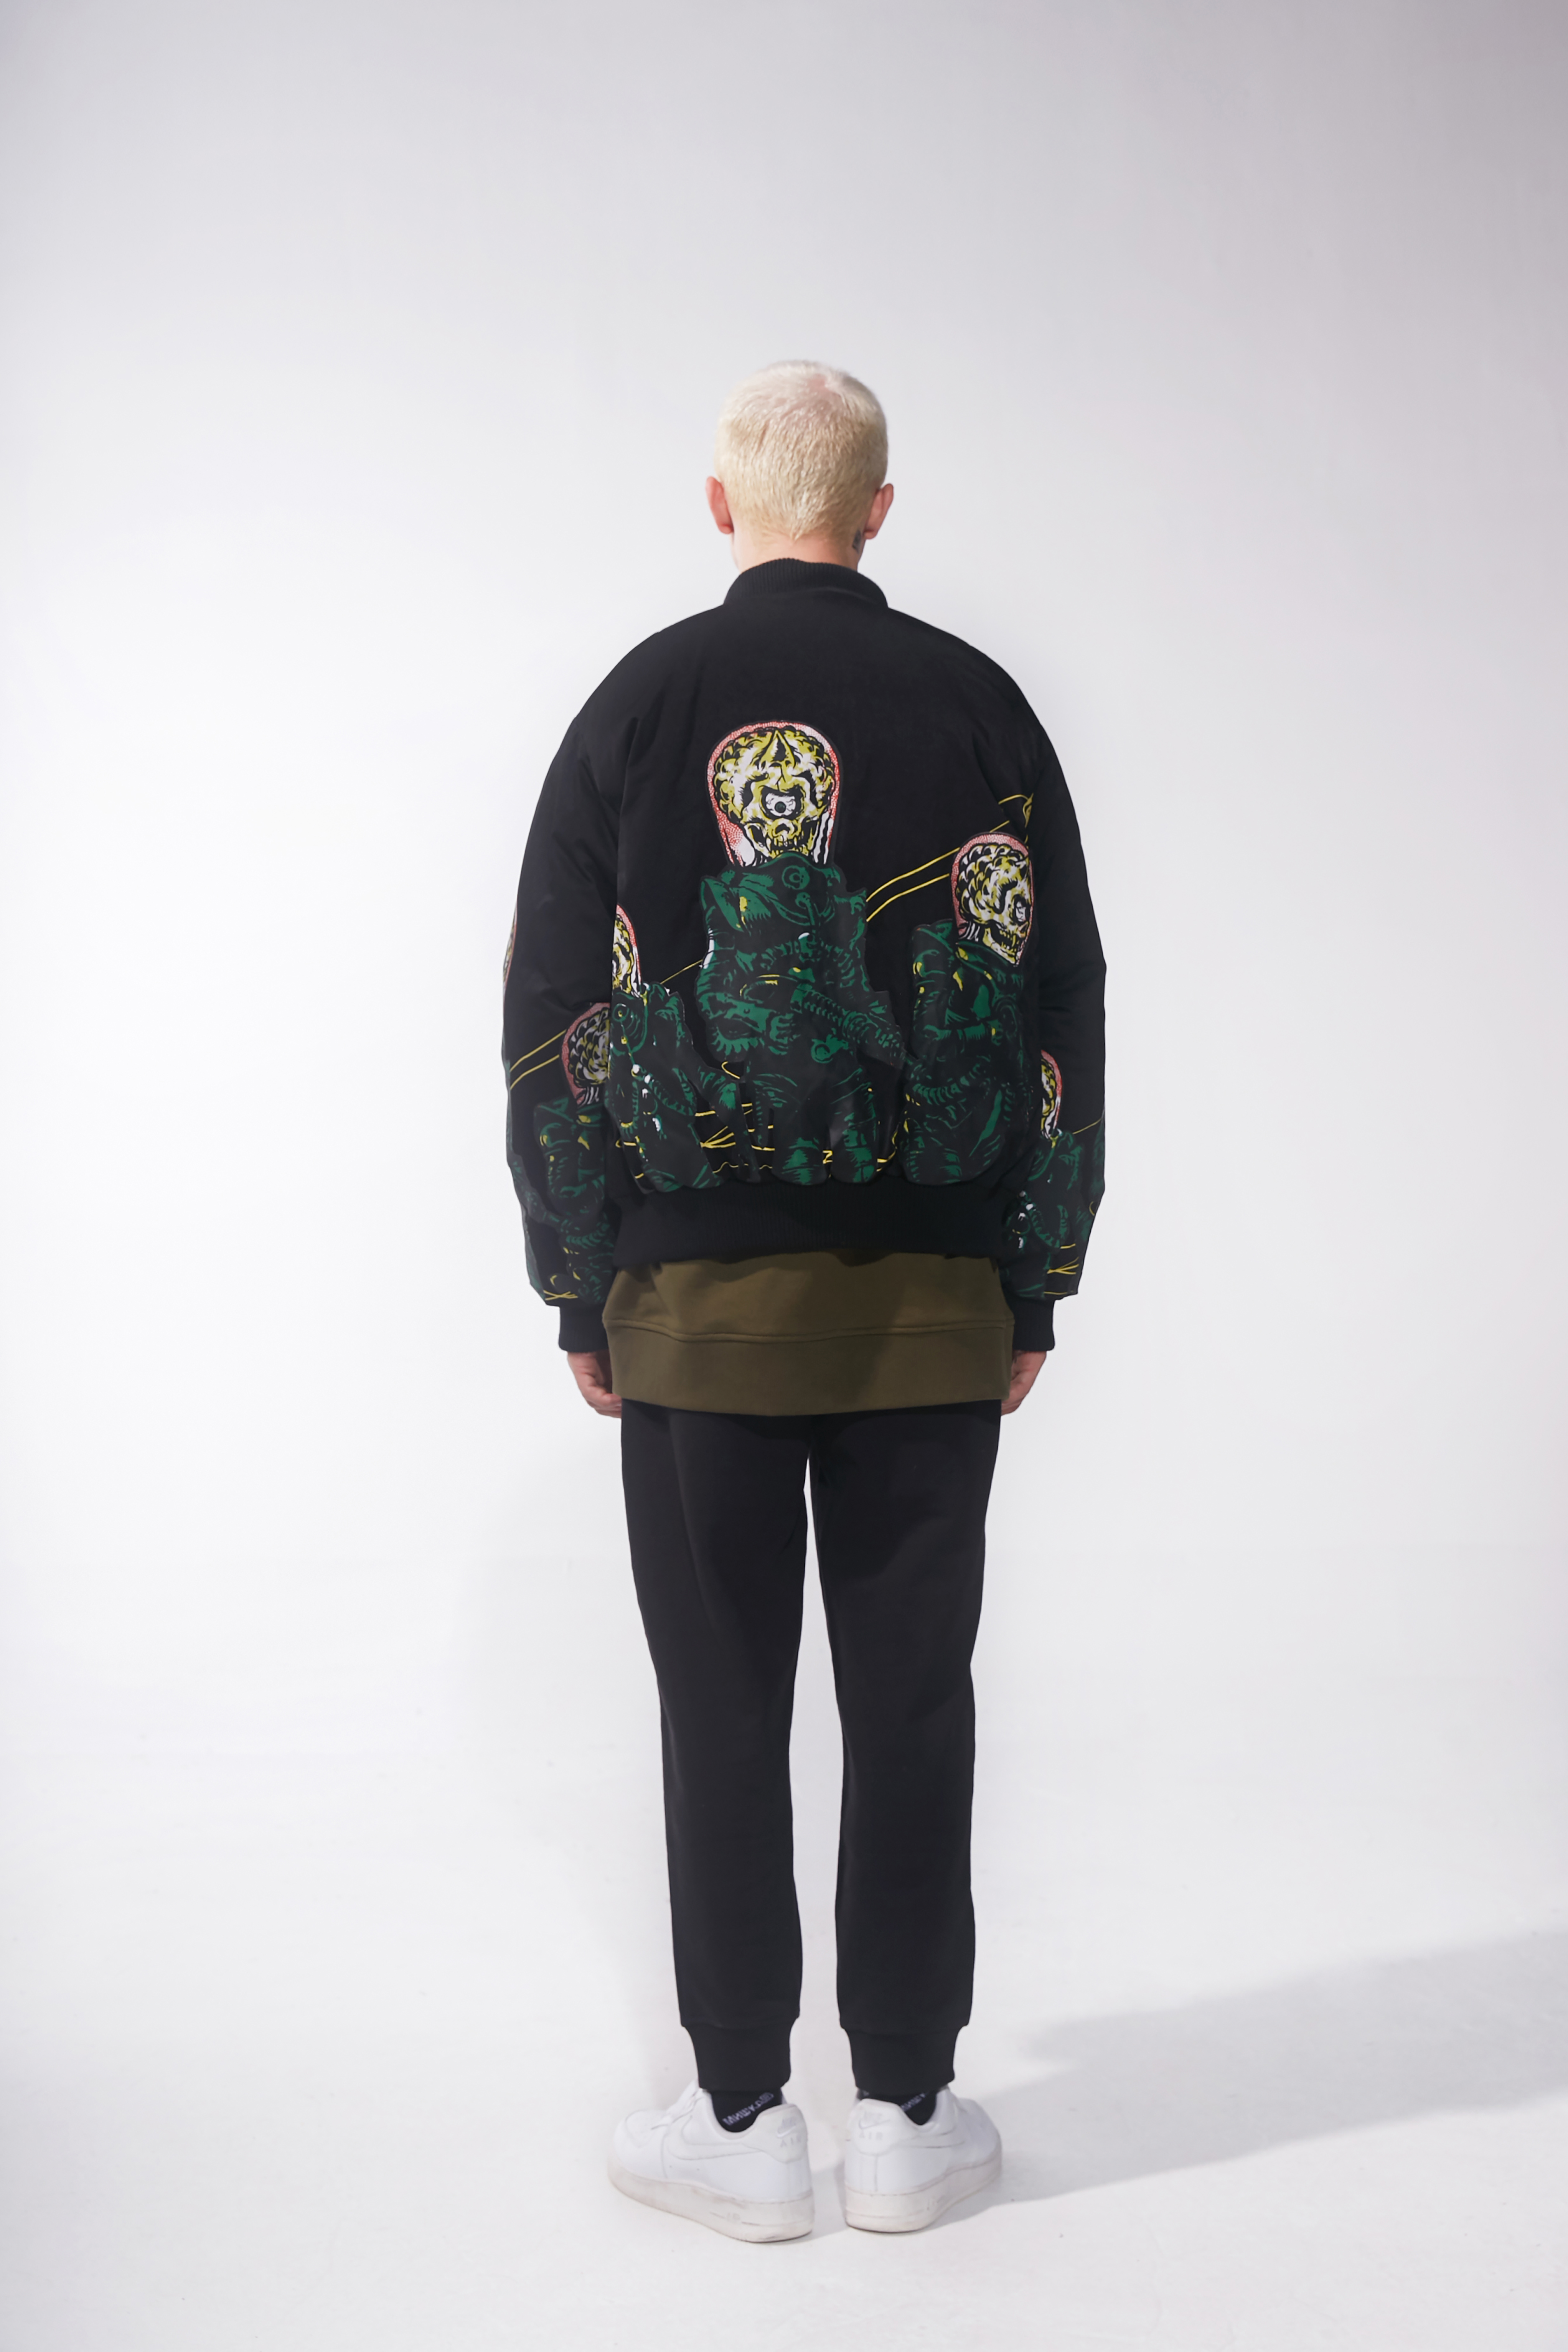 Lamour Attacks! Coaches Jacket